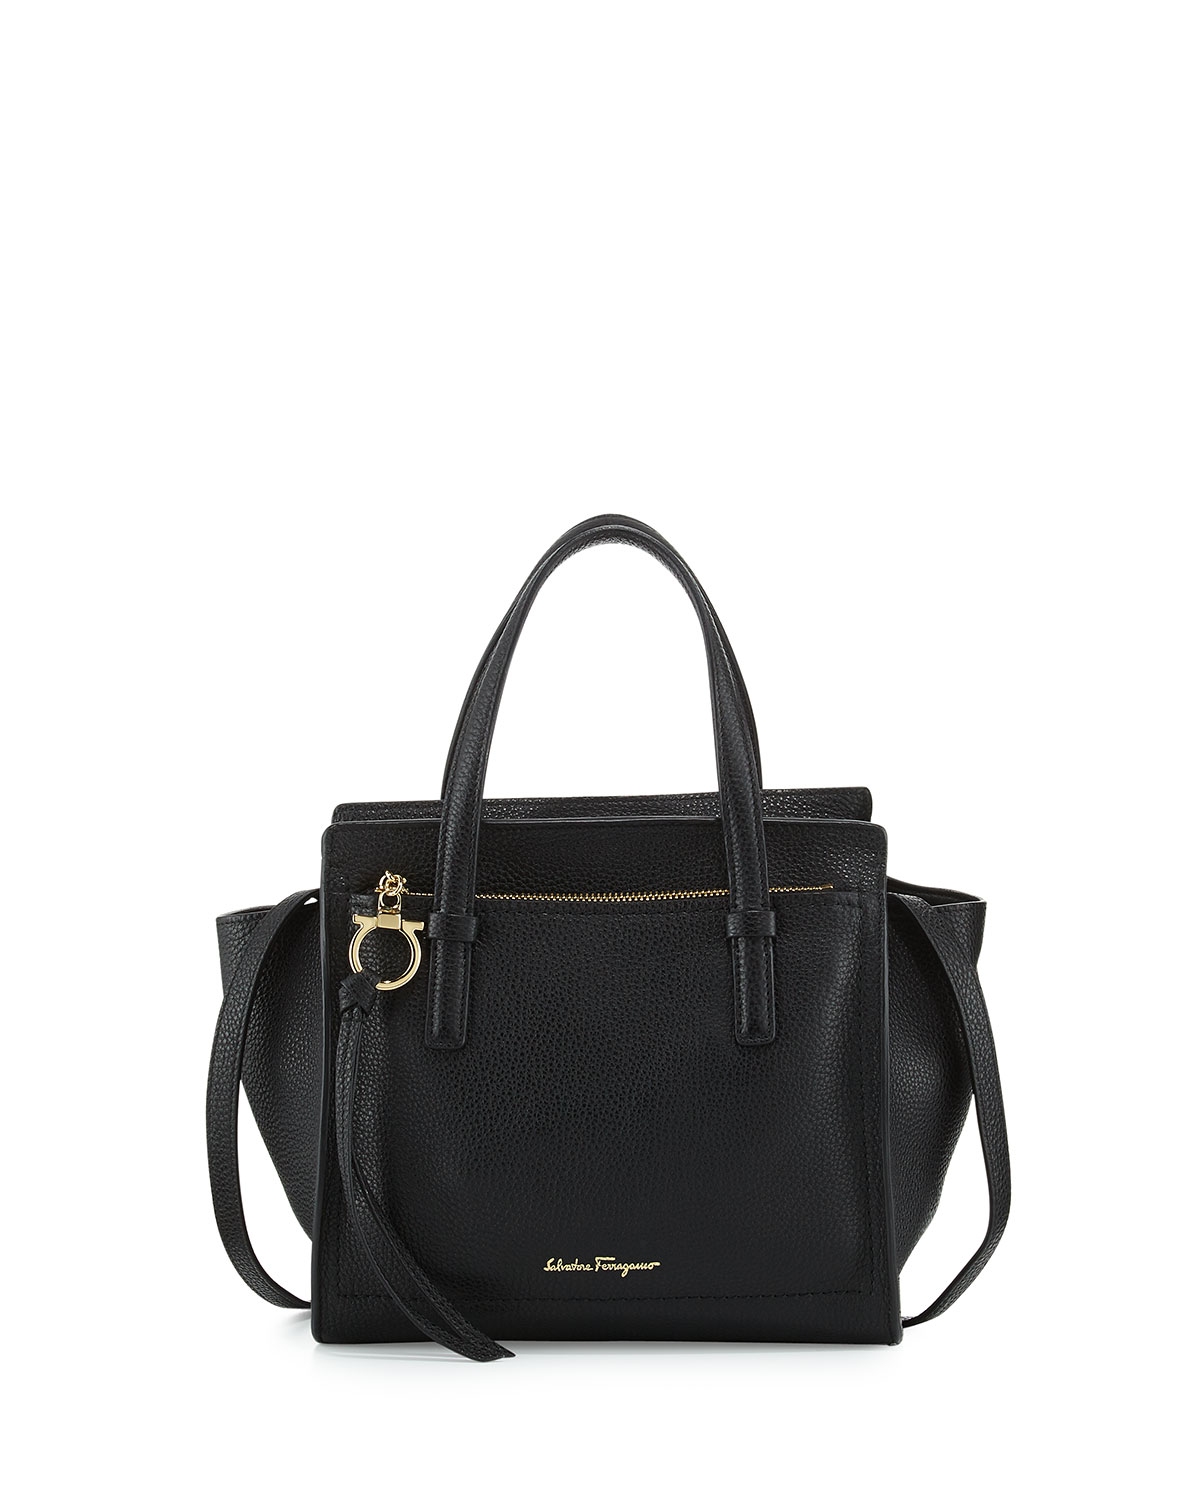 Small Leather Tote Bag, Nero